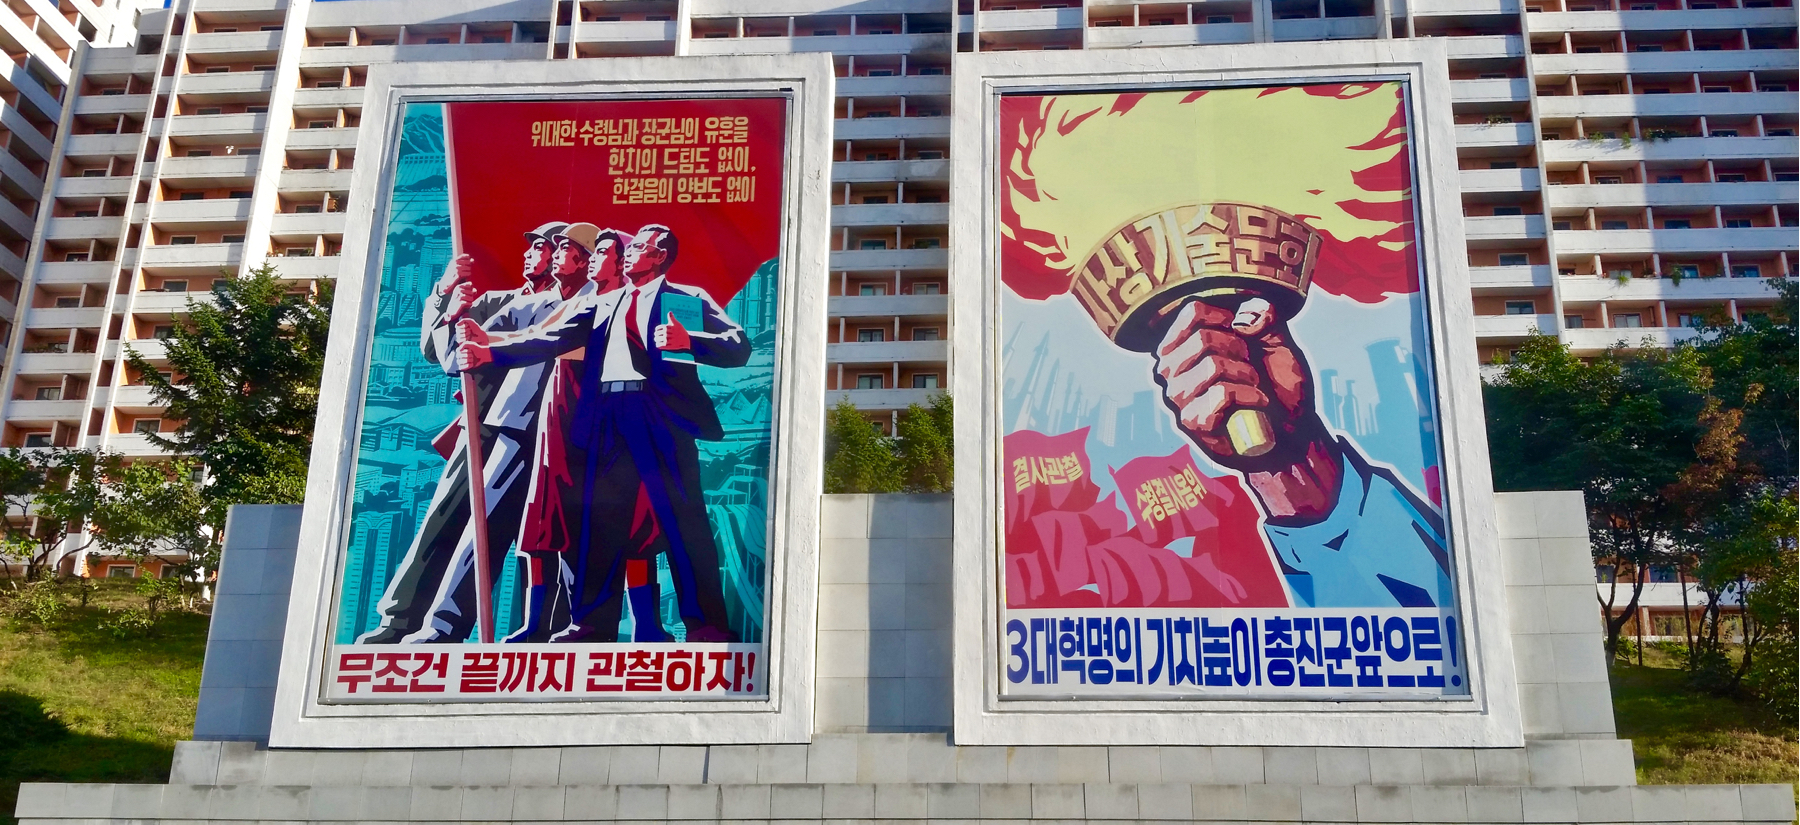 Some roadside propaganda. I tried to translate the captions of each, but it's pretty hard: On the left, 'Succeed unconditionally until the end.' and on the right 'Advance the banner of the three revolutions'?